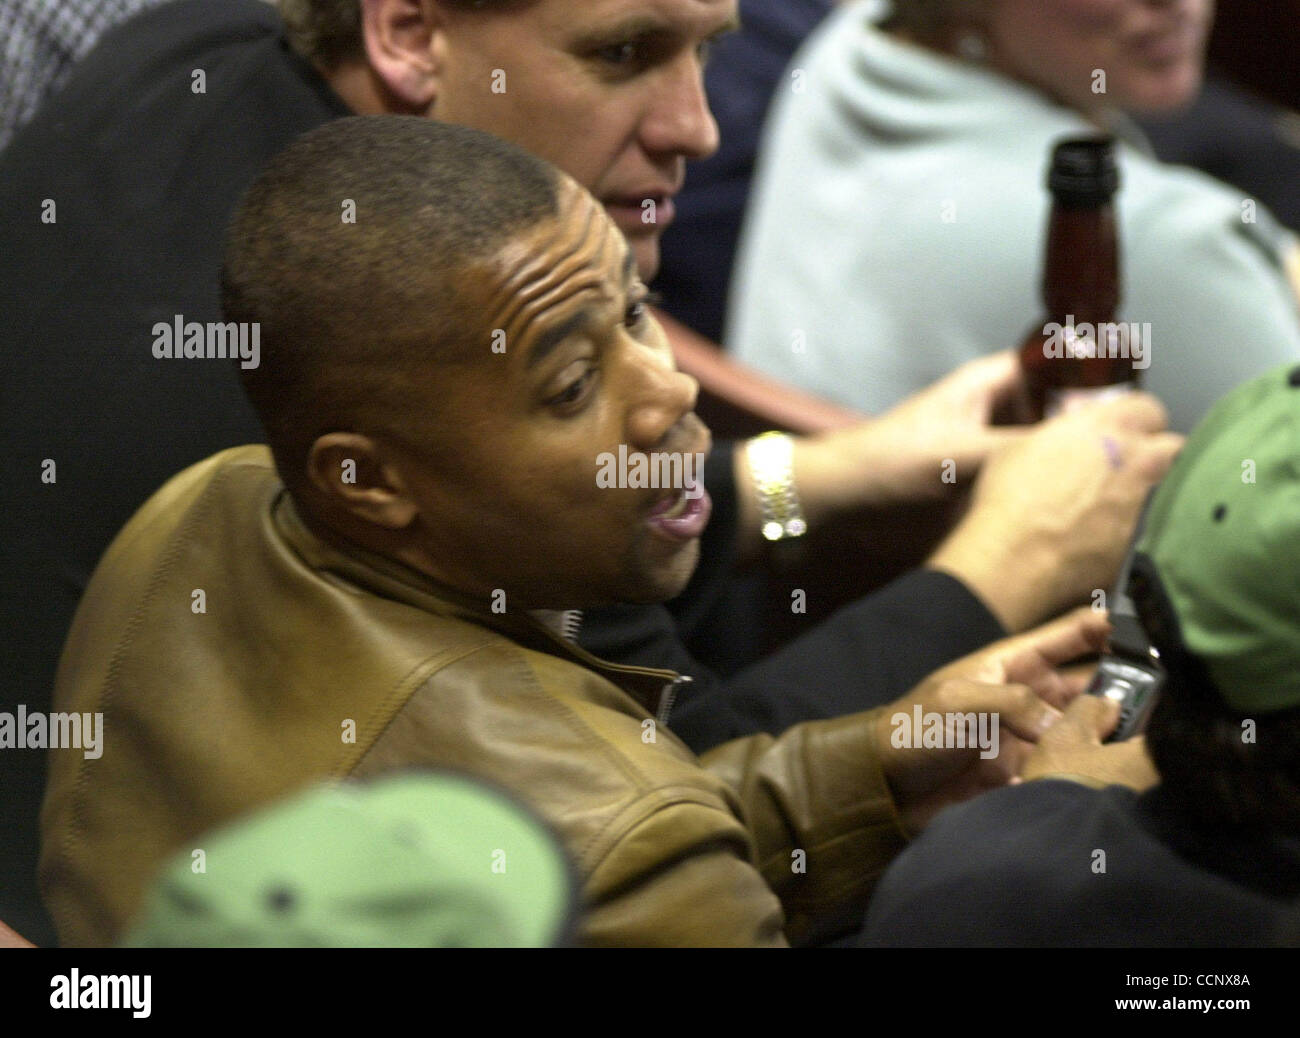 Jun 07, 2003; Los Angeles, CA, USA; Actor CUBA GOODING JR. chats with fans during game six of the Stanley Cup Finals - Stock Image